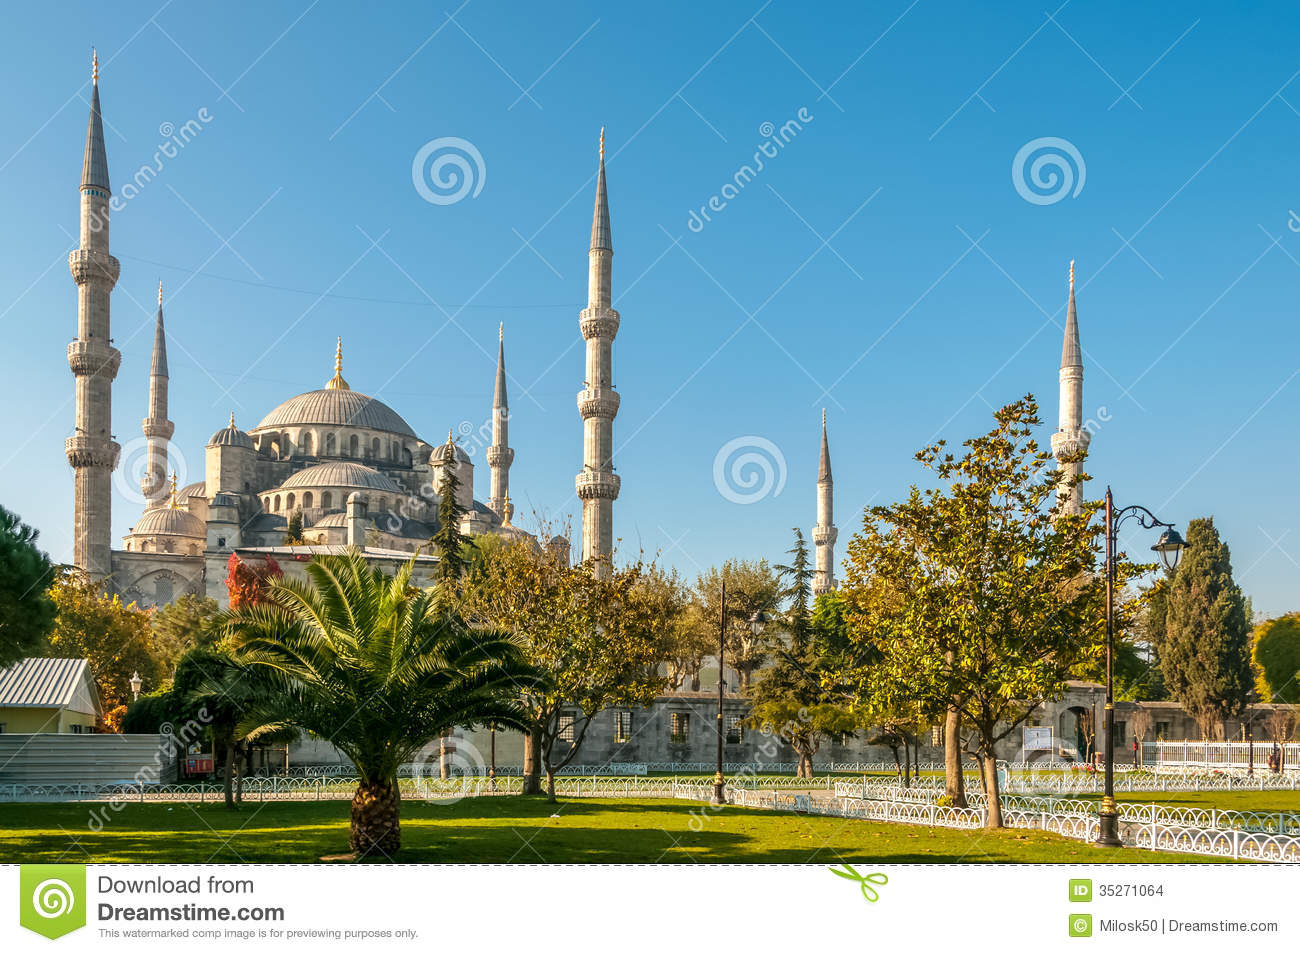 Sultan Ahmed Mosque (moschea blu)